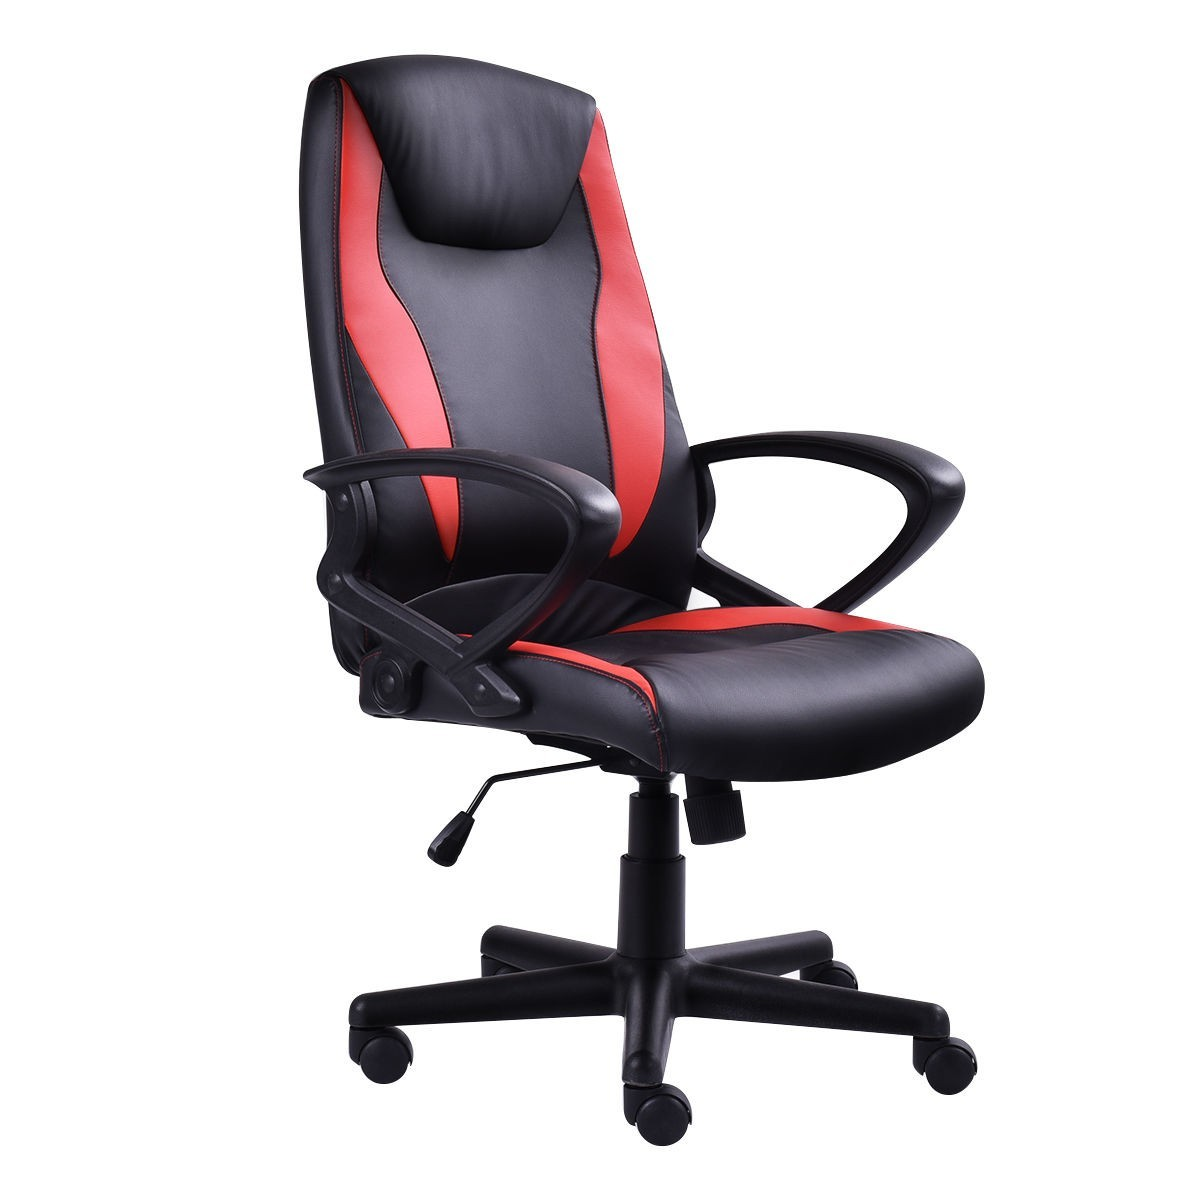 High-back Racing Style Gaming Chair with Head-Supported Pillow